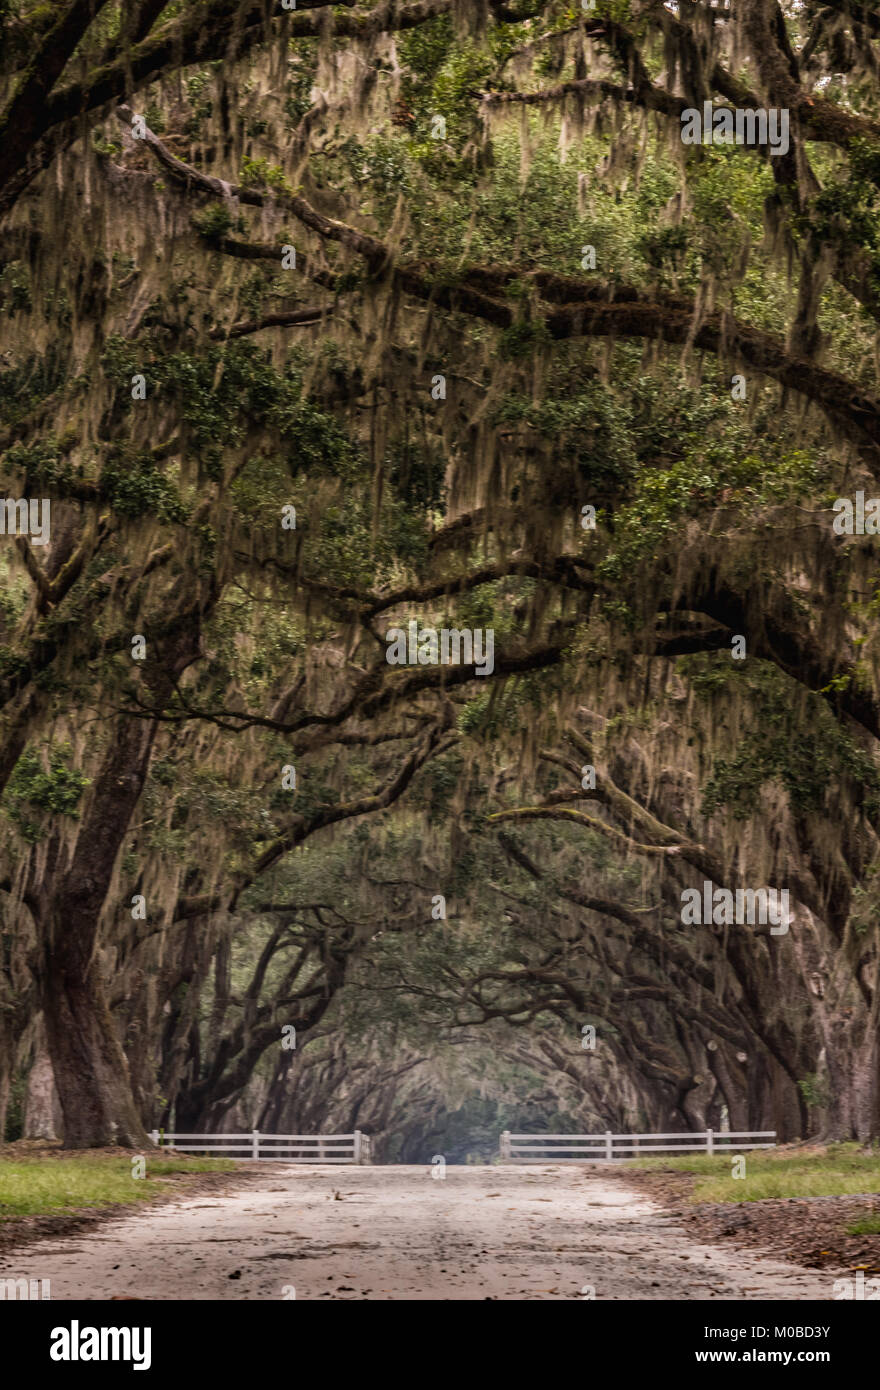 Dirt Road Through Gate Under Live Oak Trees Vetical Image - Stock Image